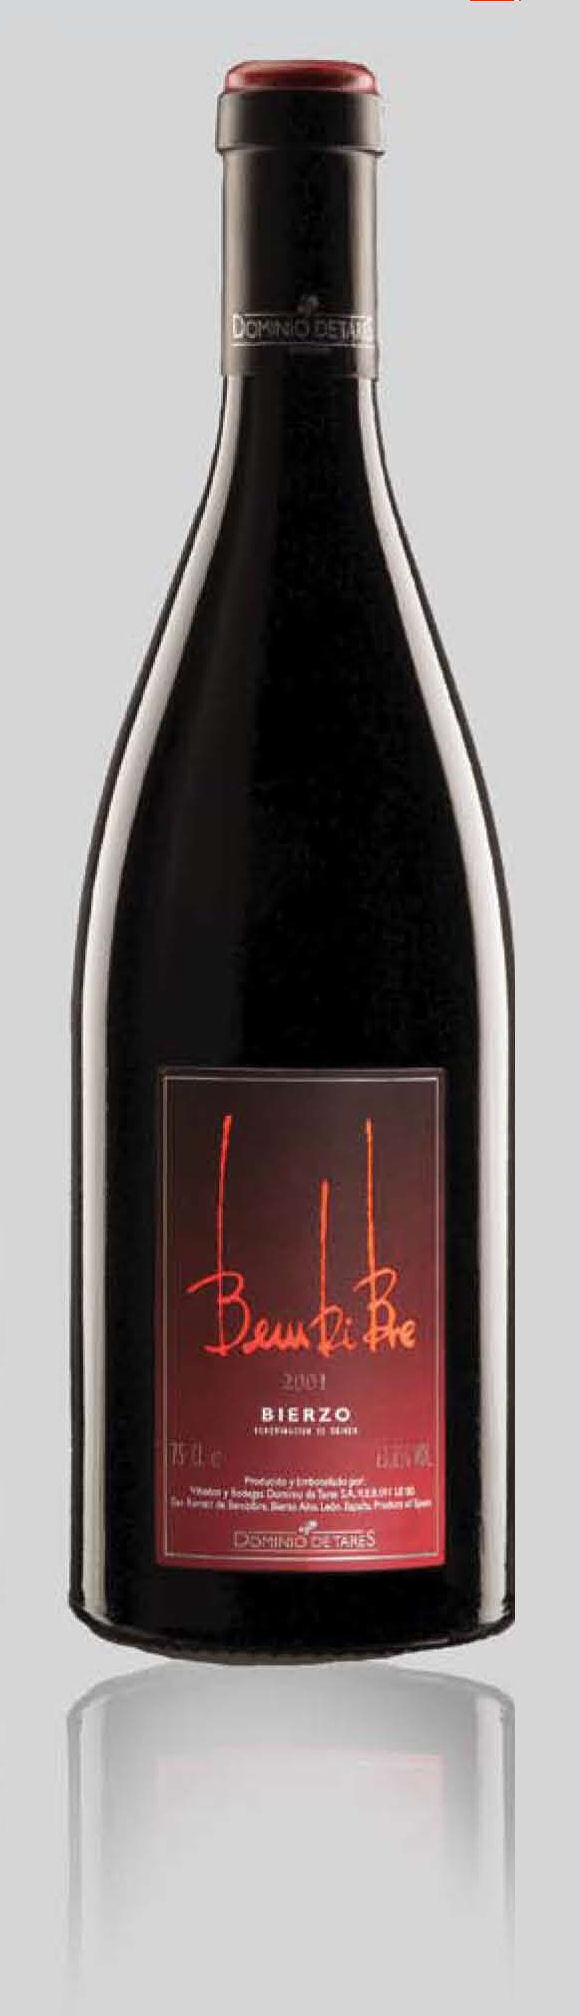 Vinos Del Bierzo Dominio De Tares Bembibre Uva Mencia 100 Top 10 Vinos Espanoles Wine Spectator Vinos De Esp Wine Label Packaging Just Wine Wine Drinks